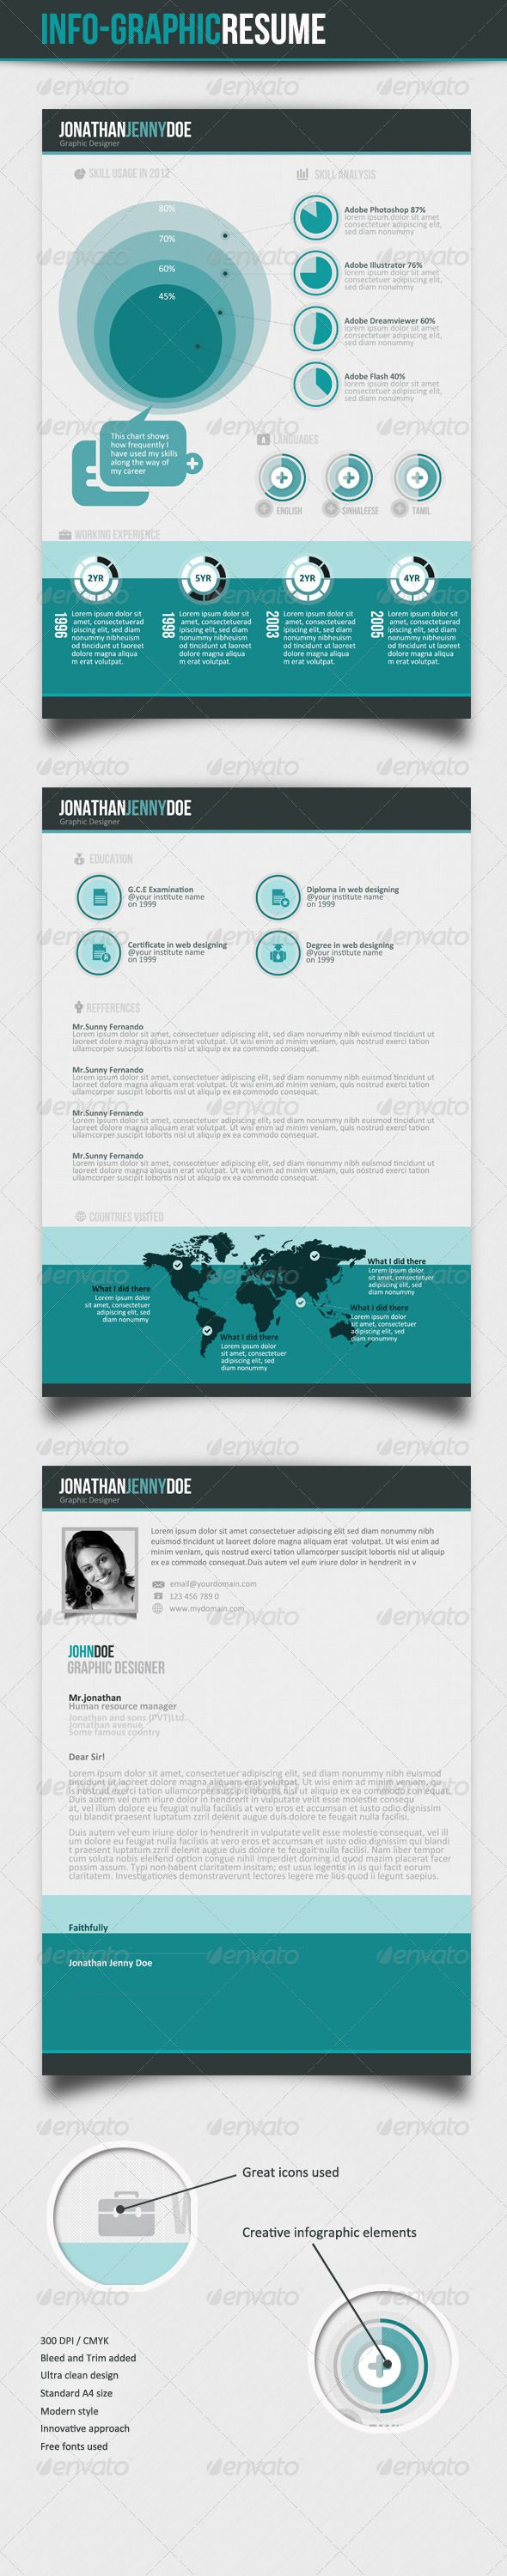 best images about info graphic resumes portal 17 best images about info graphic resumes portal resume design and simple resume